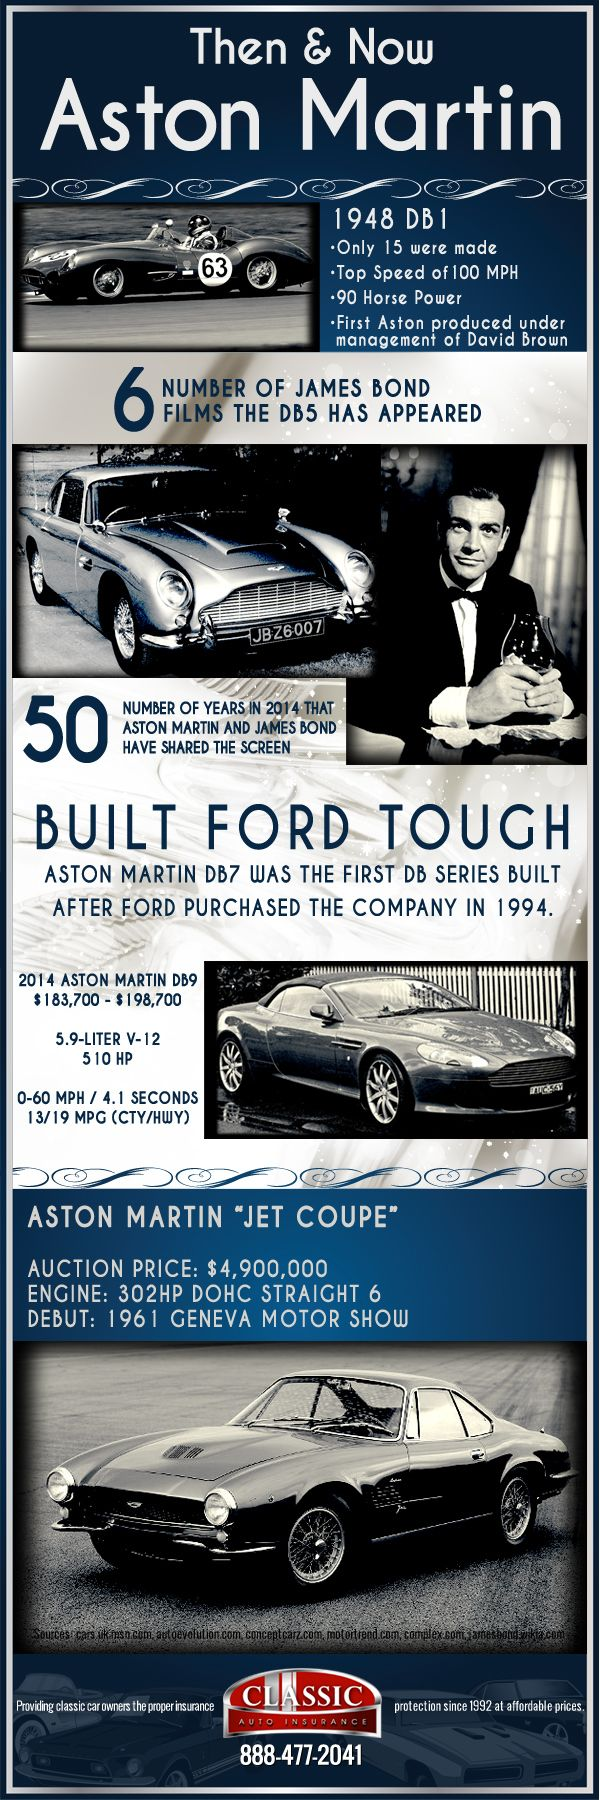 History of Aston Martin luxury collector cars infographic